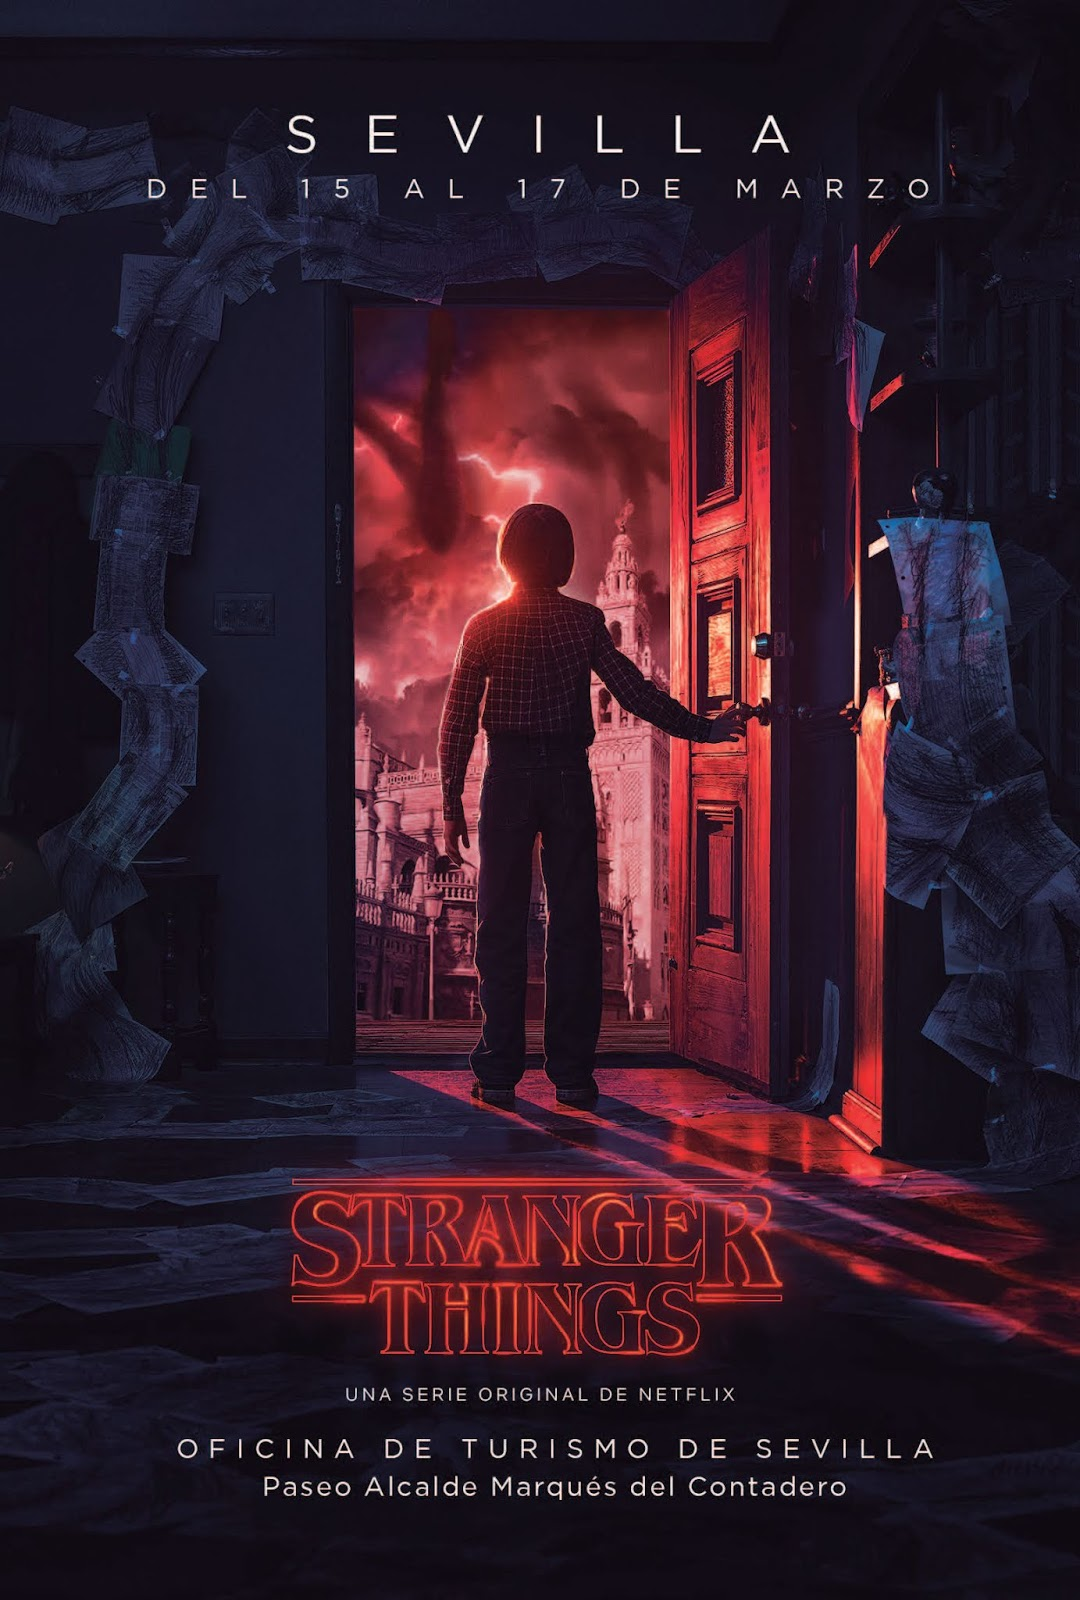 Cartel Stranger Things en Sevilla